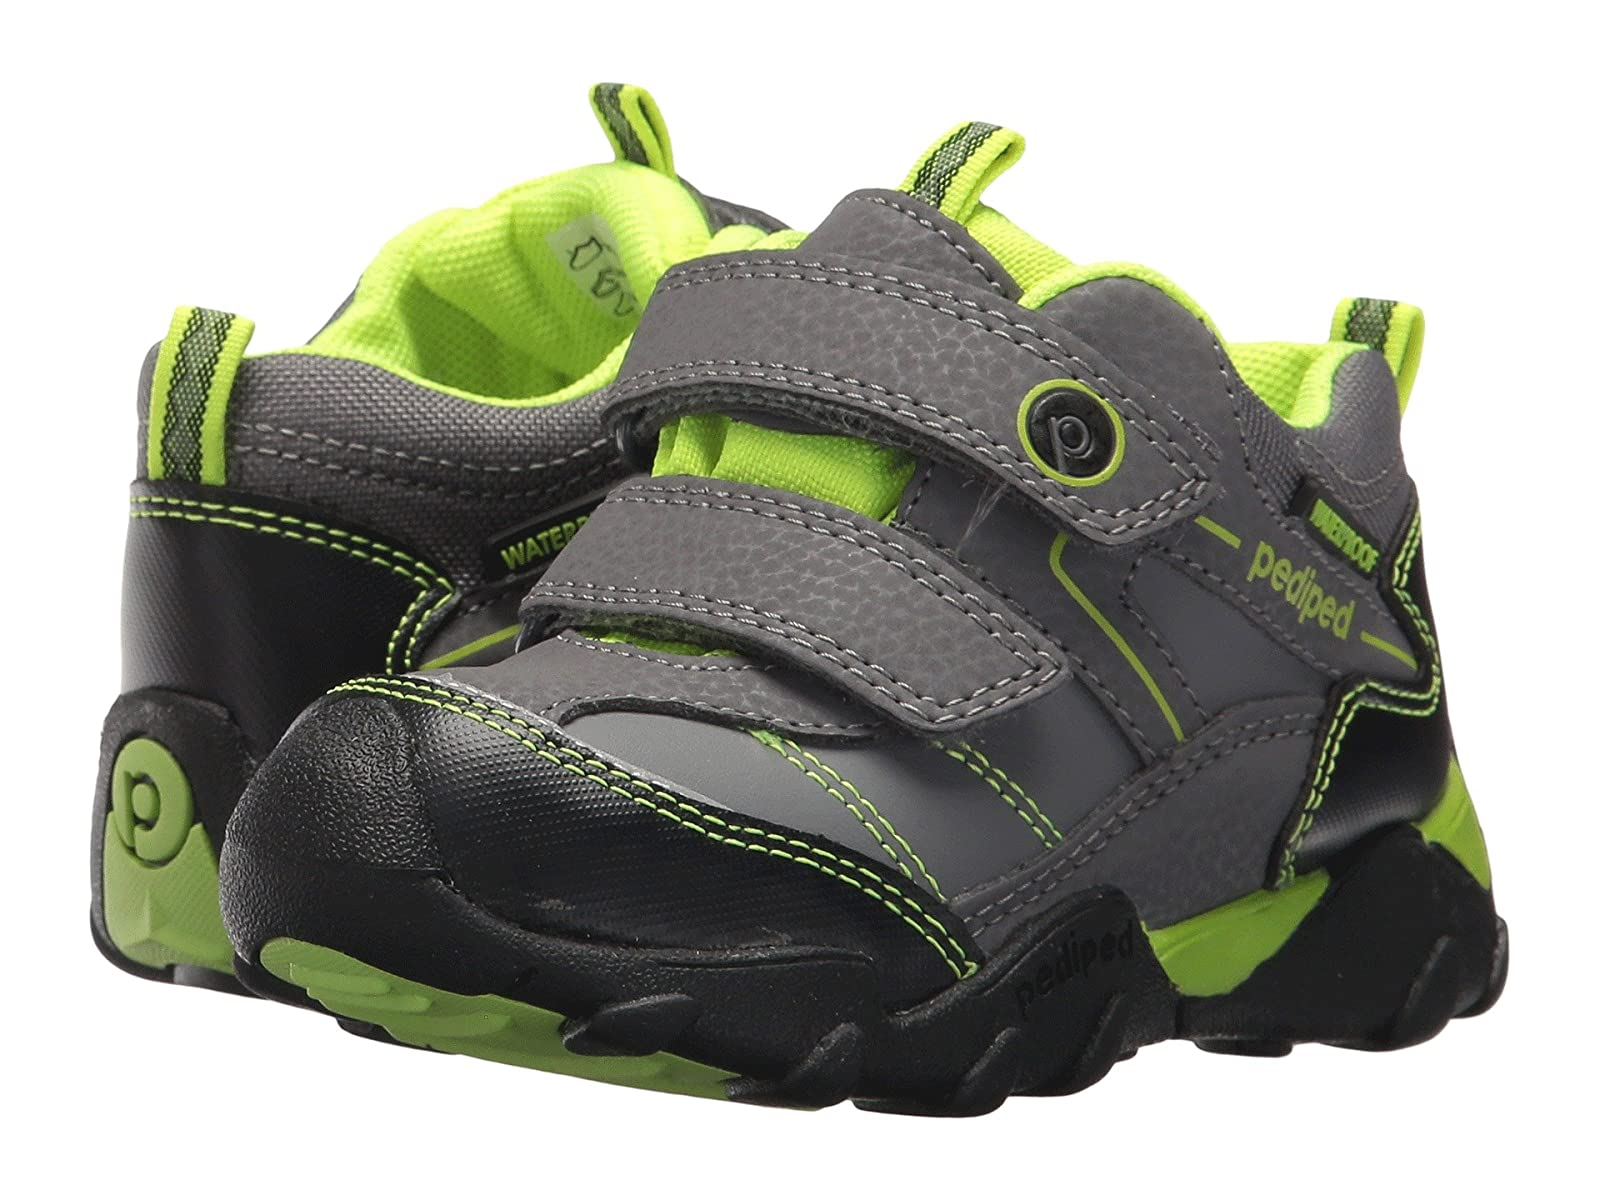 pediped Max Flex (Toddler/Little Kid)Economical and quality shoes